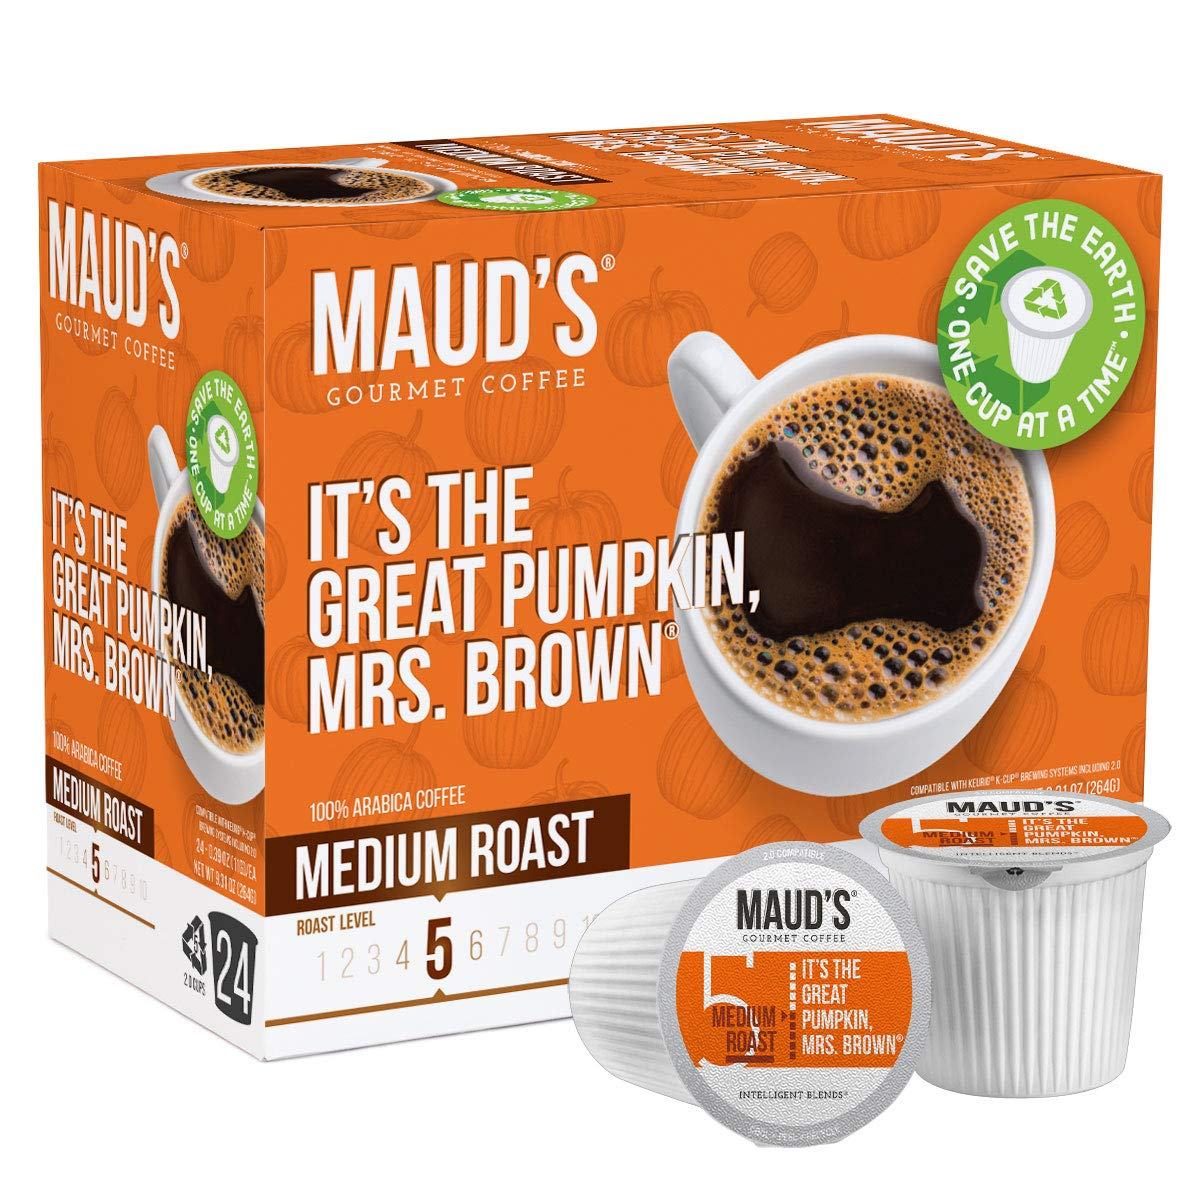 Maud's Pumpkin Spice Coffee (Great Pumpkin Mrs. Brown), 24ct. Solar Energy Produced Recyclable Single Serve Pumpkin Spice Flavored Coffee Pods – 100% Arabica Coffee California Roasted, KCup Compatible